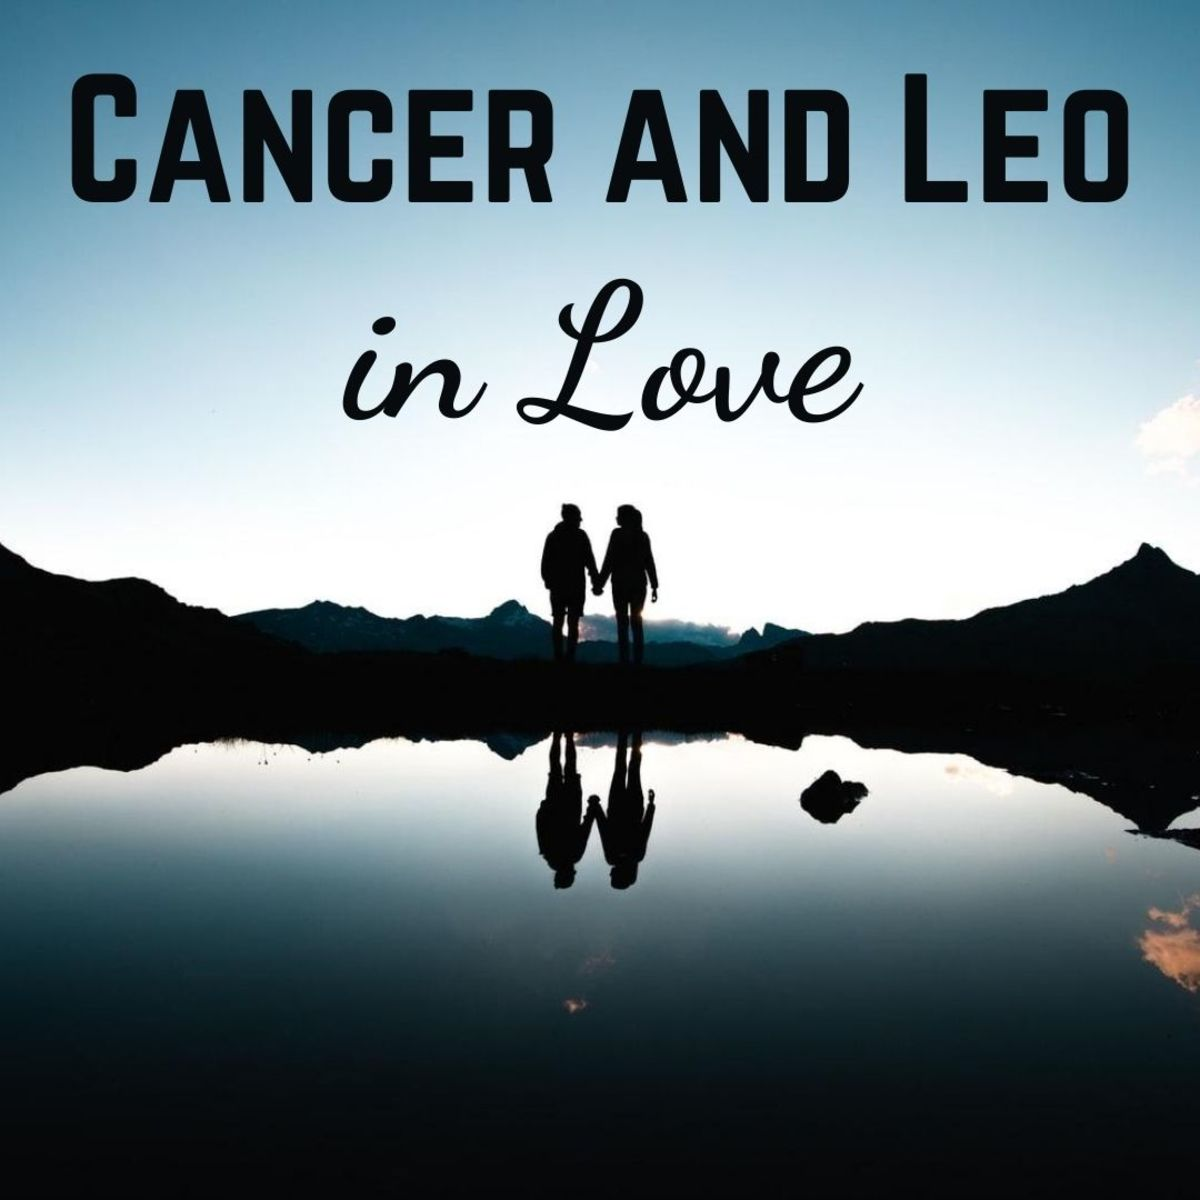 As neighboring signs, Cancer and Leo can easily make a relationship work.